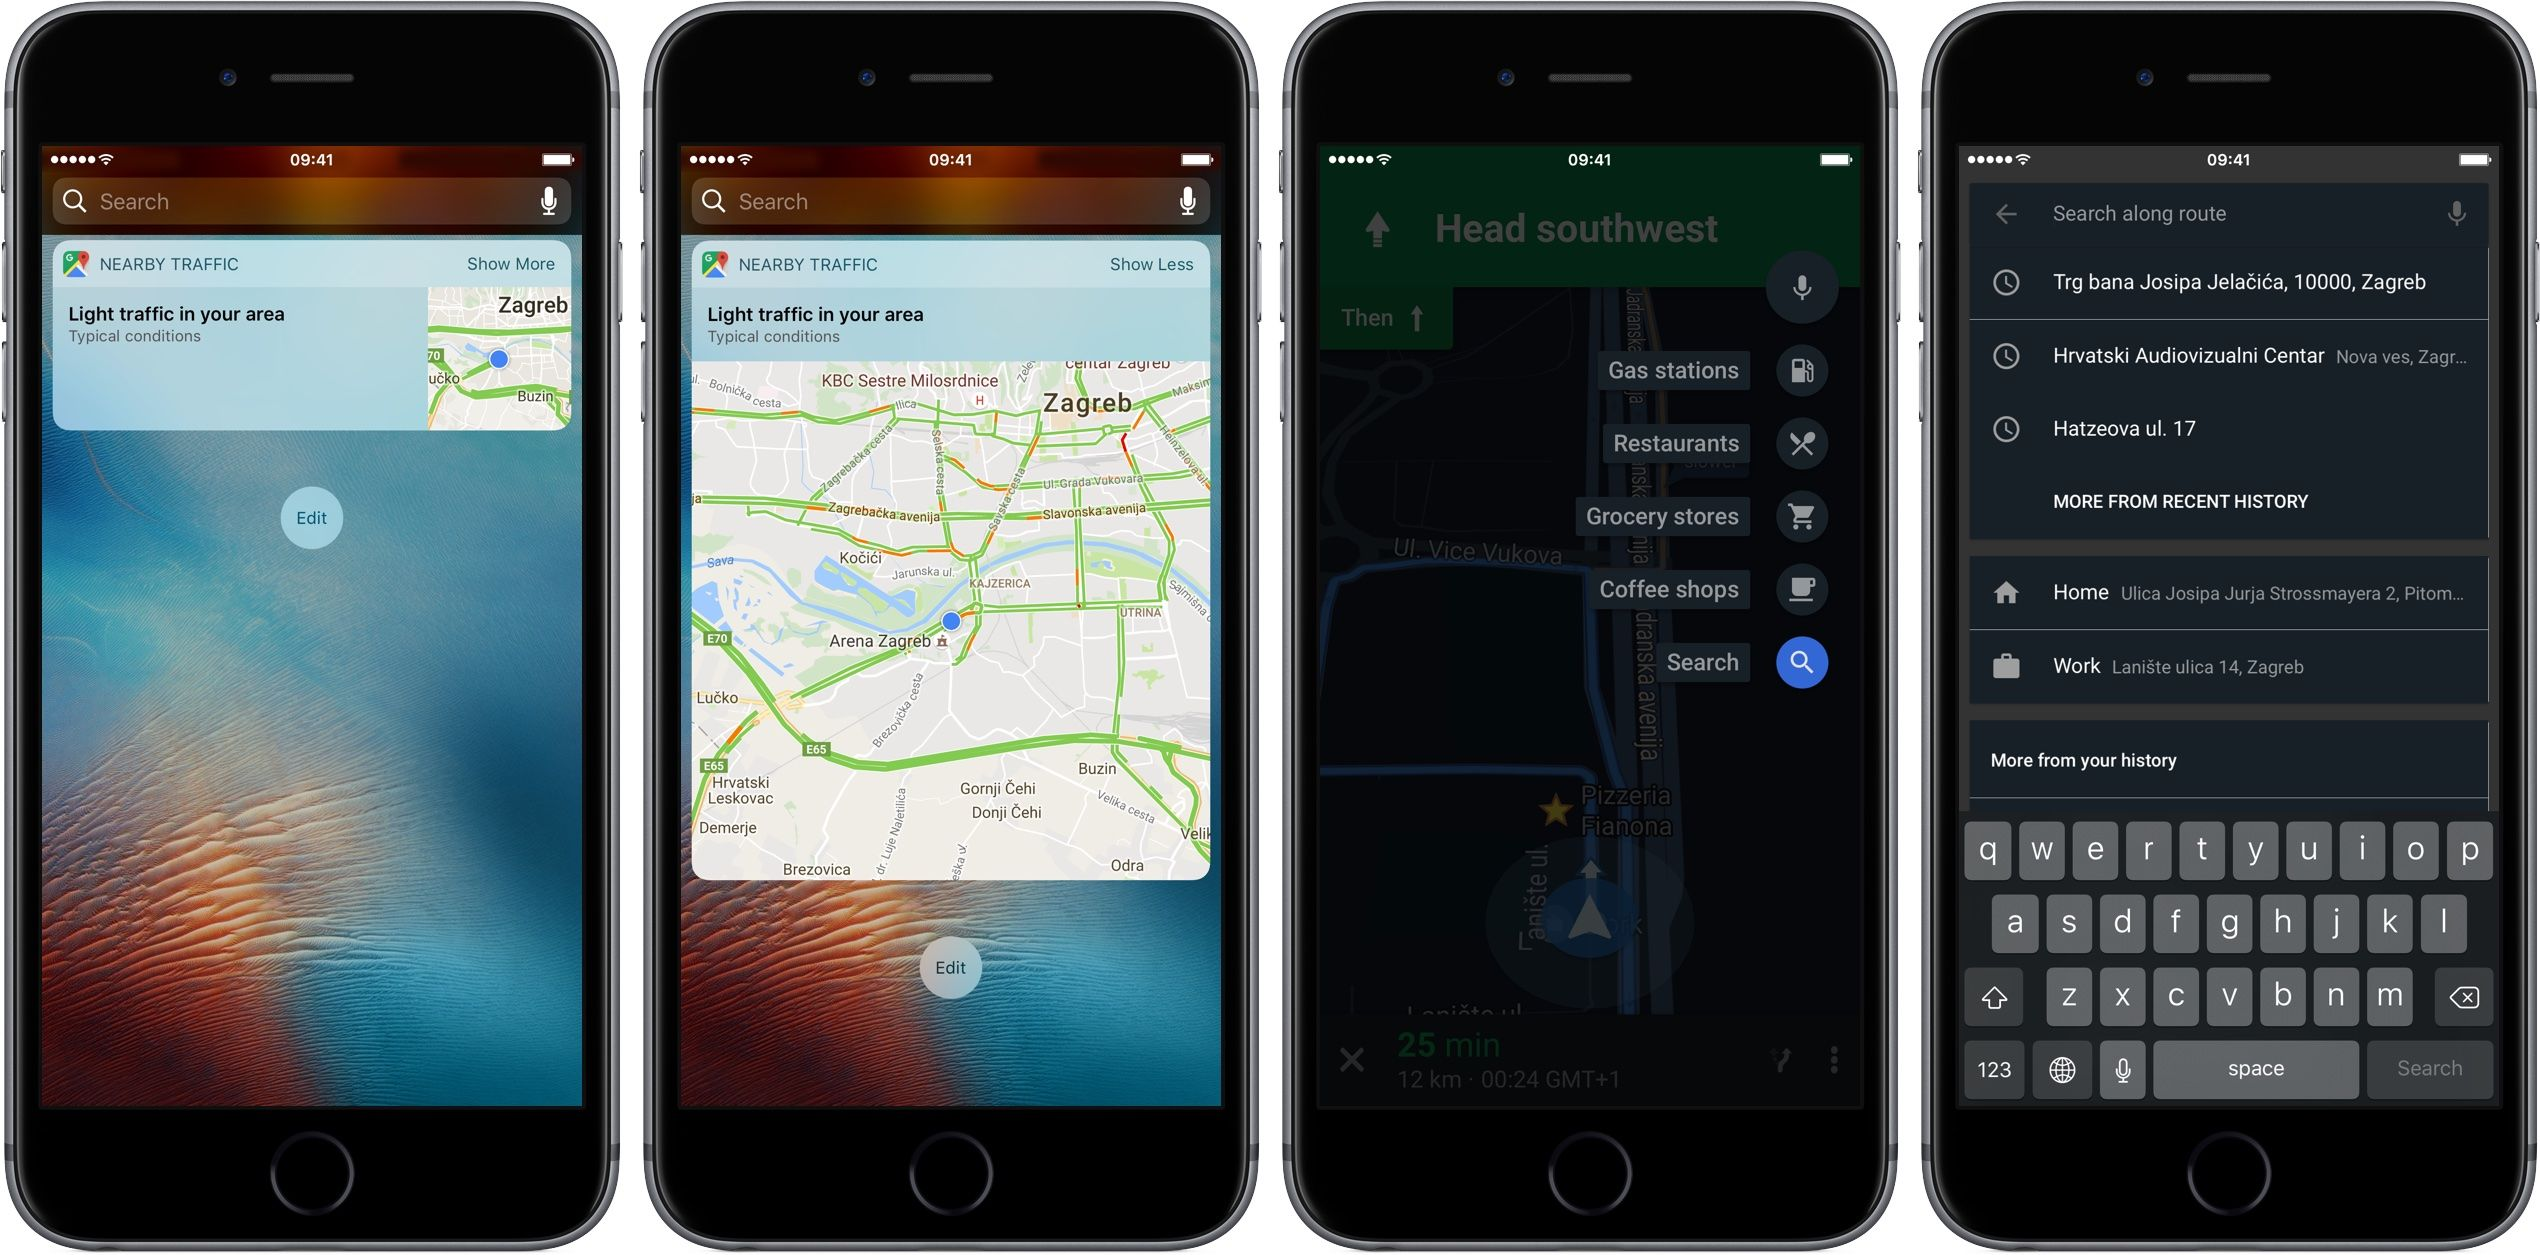 Google Maps For Ios Search Along Route Iphone Screenshot 001 Ios Update Google Maps Google Today